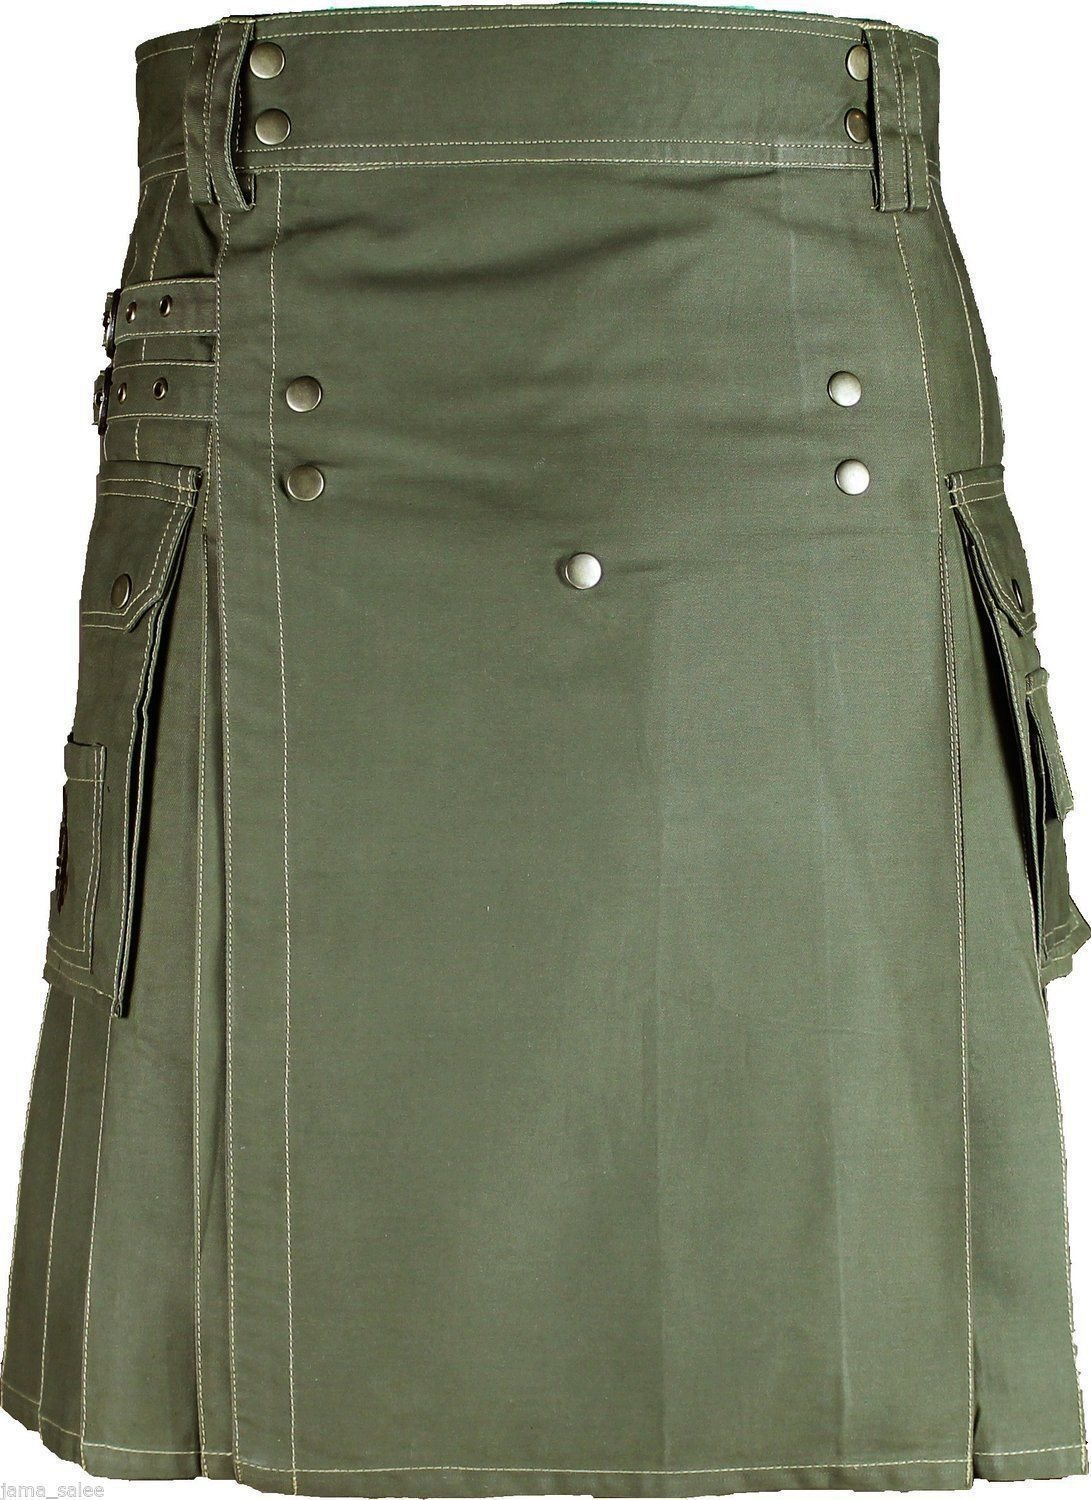 Size 40 Handmade Modern Utility Olive Green Cotton Kilt With Big Cargo Pockets Brass Materials